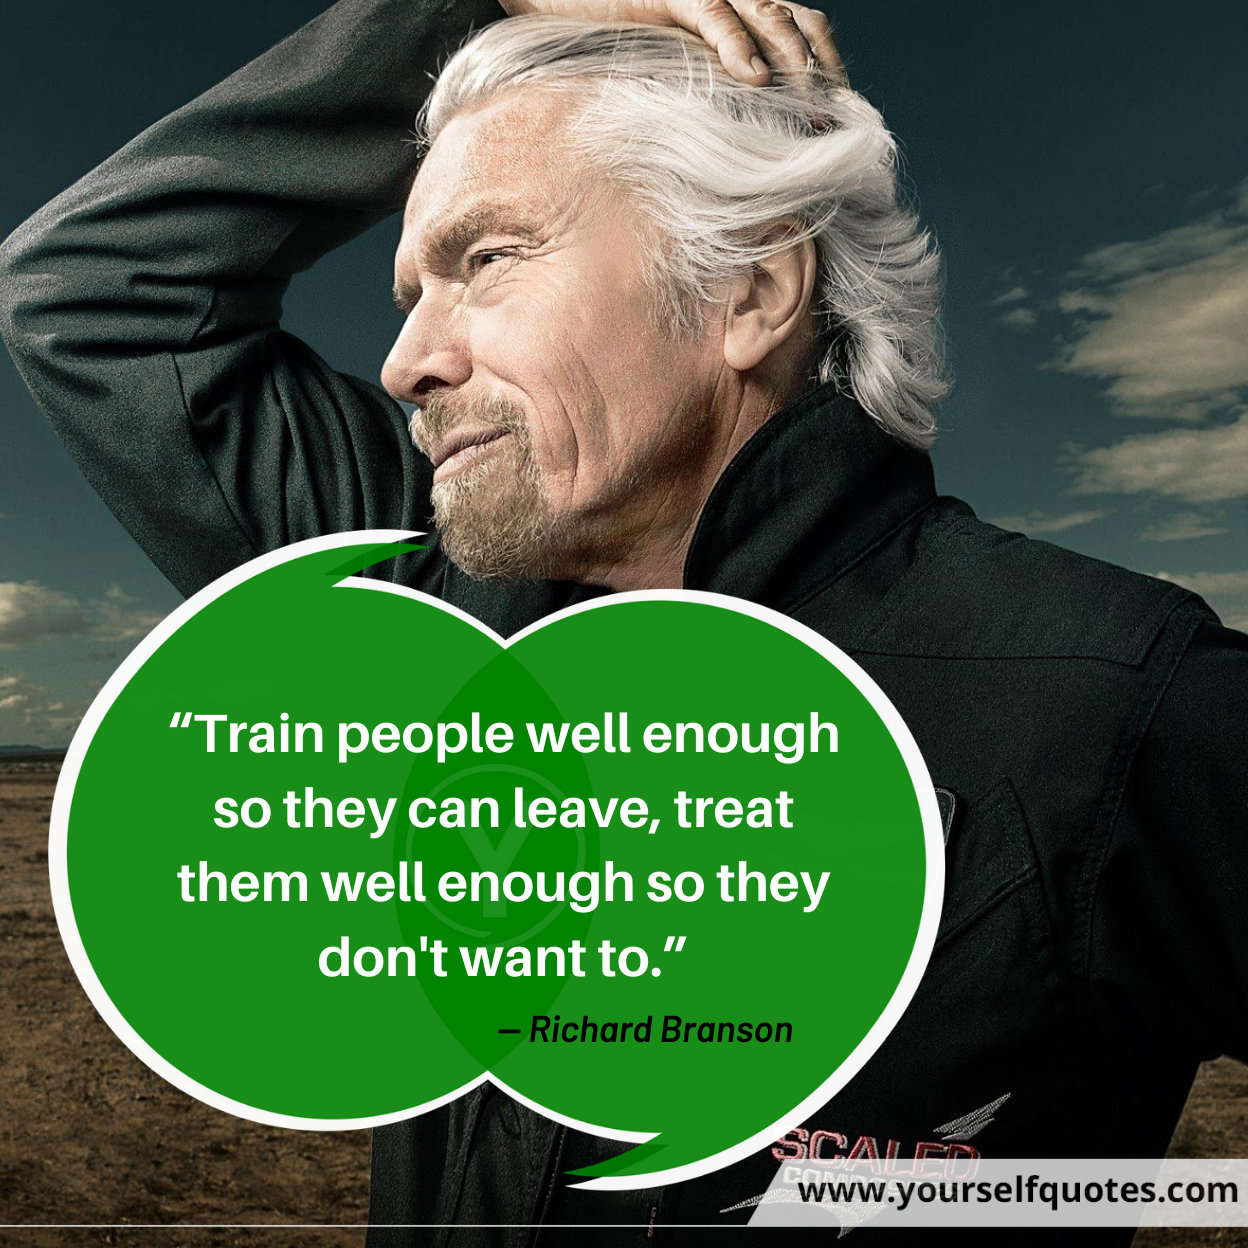 Richard Branson Quotes On Business